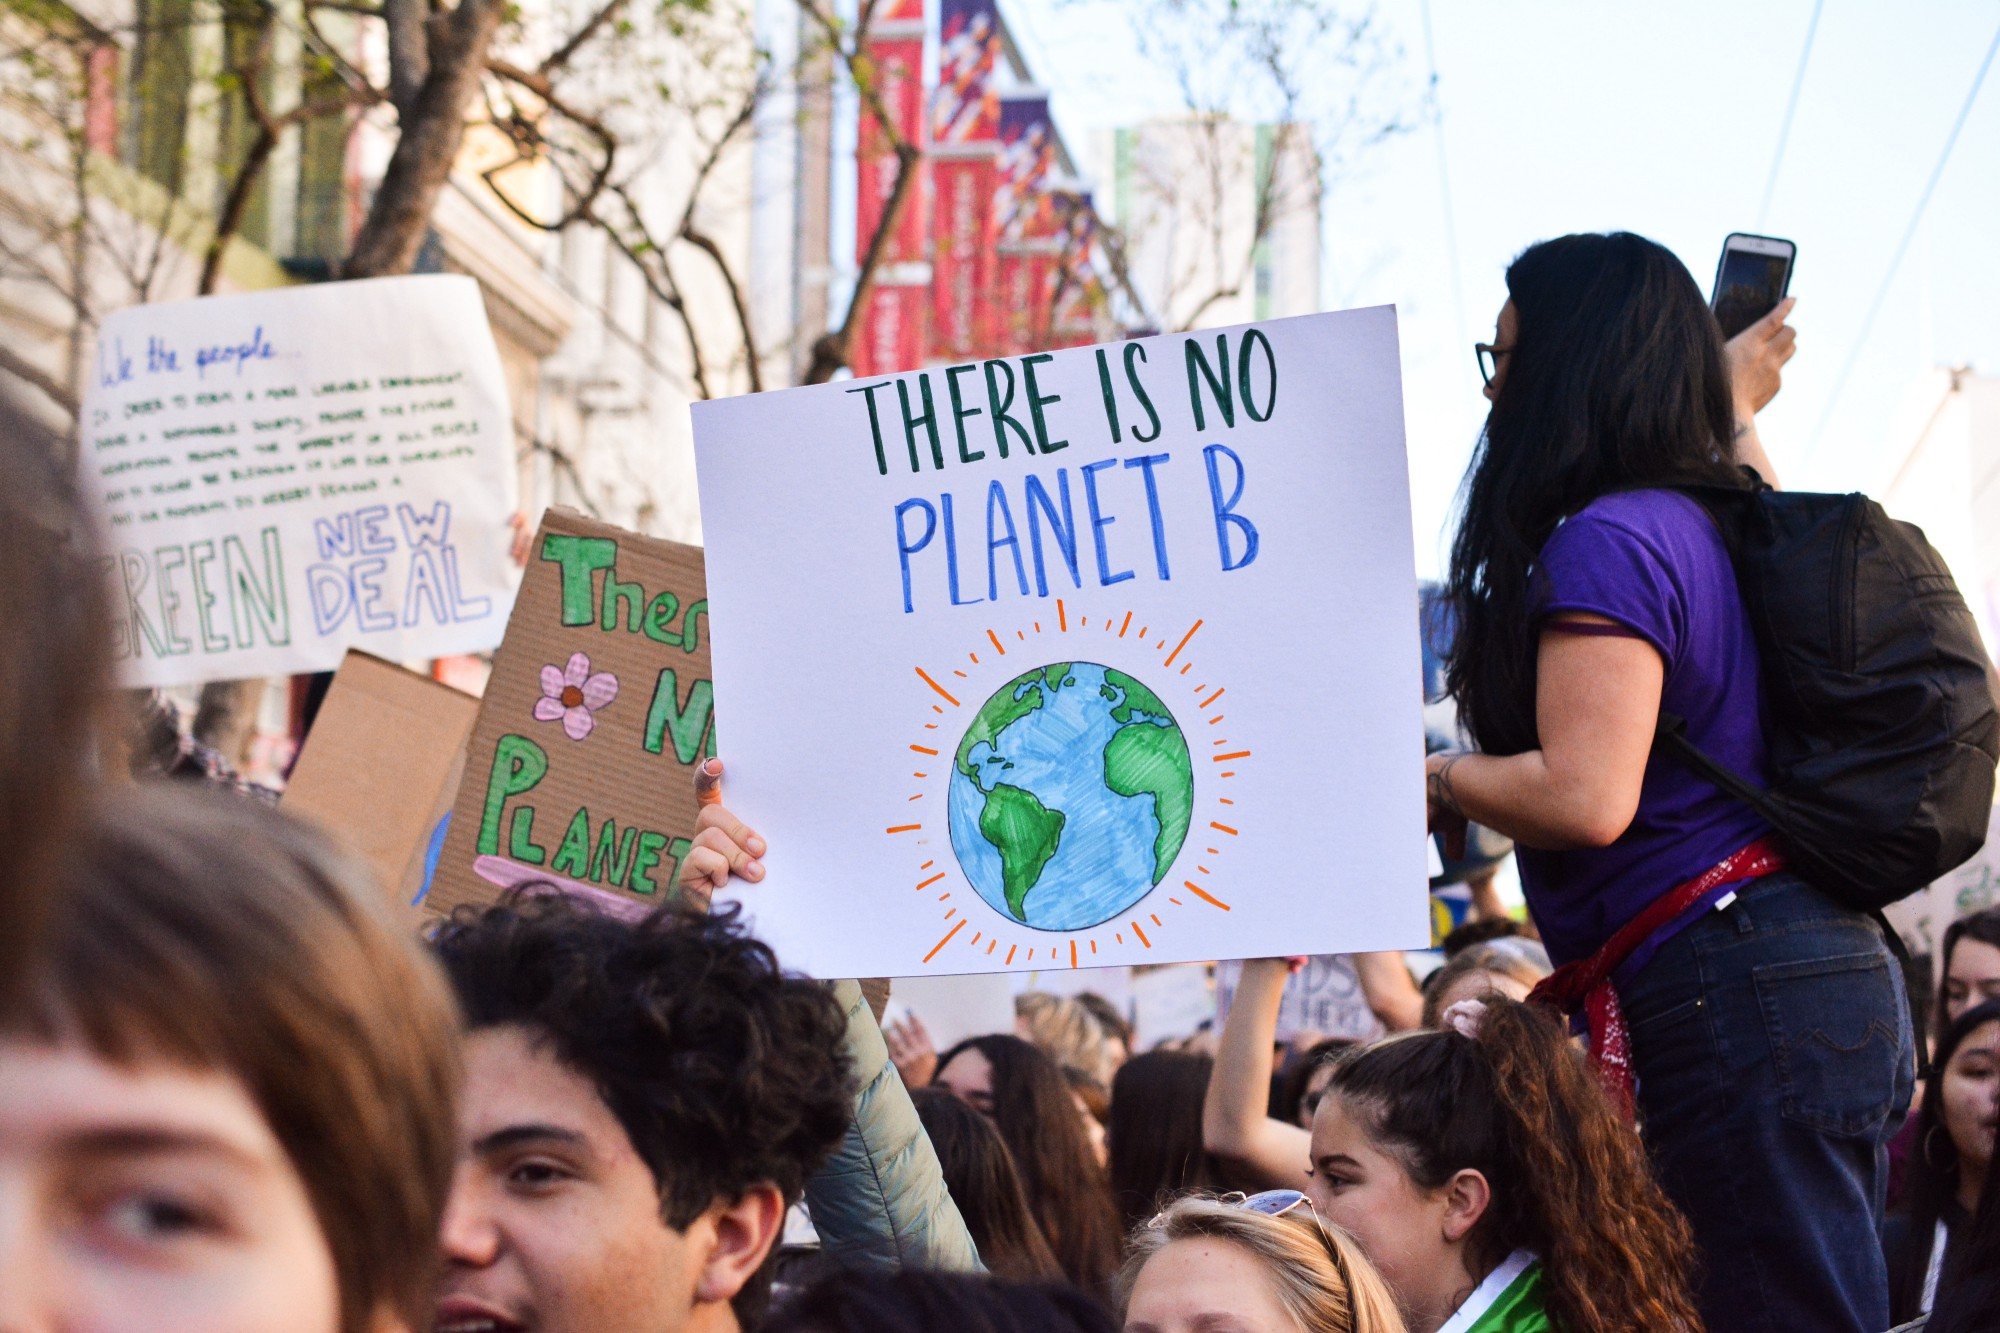 People demonstrating for change in climate policy